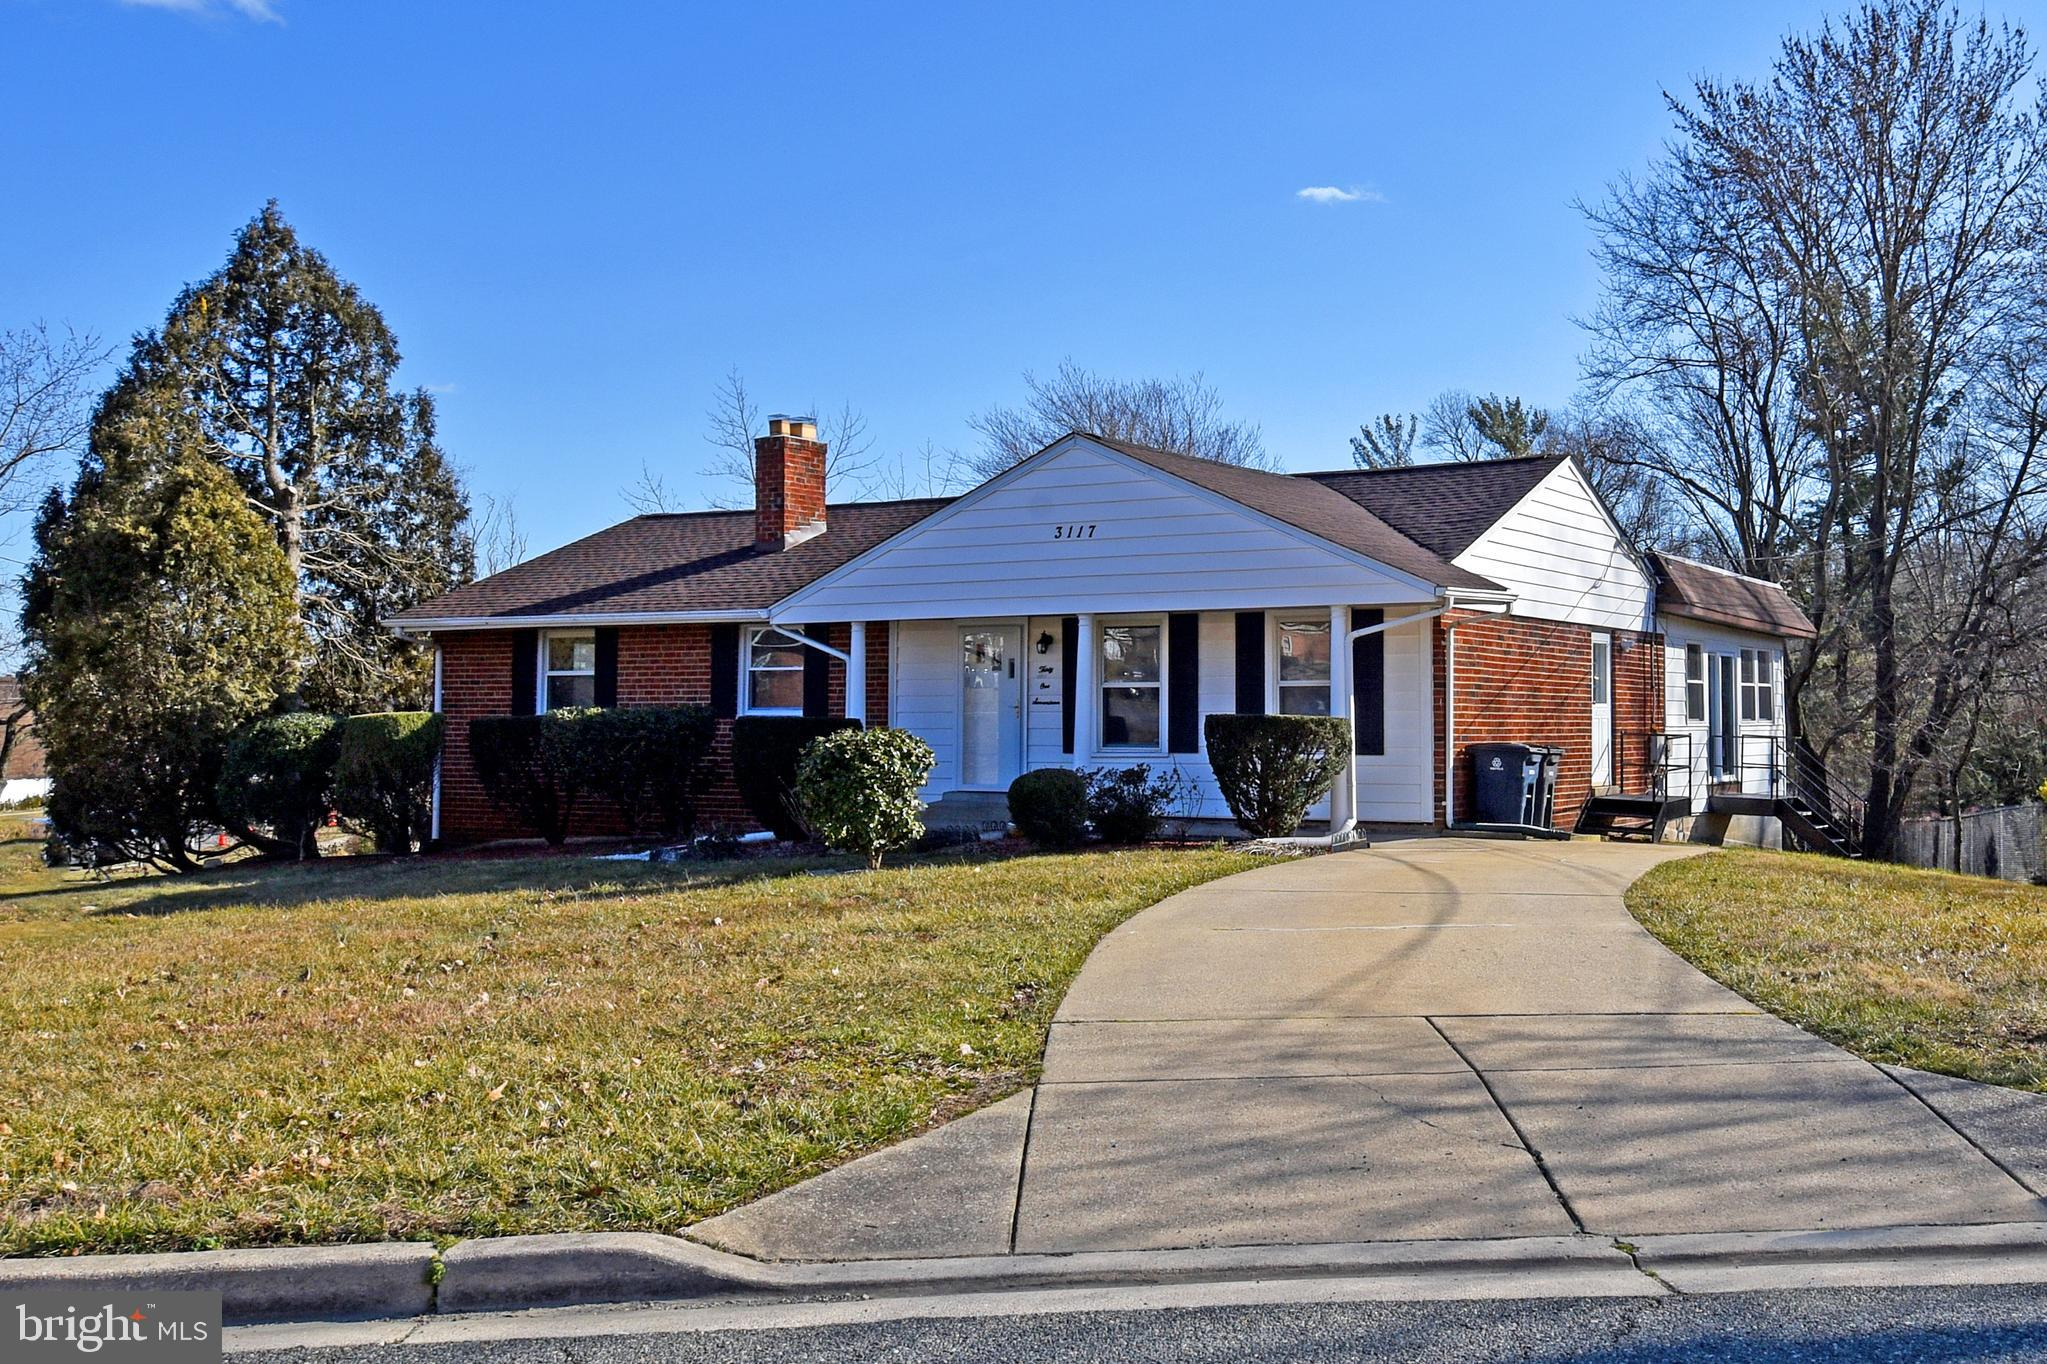 MUST SEE TO BELIEVE! TOTALLY RENOVATED SINGLE FAMILY HOME W/ 4500 TOT. SQ. FT. SITTING ON .33 ACRE C